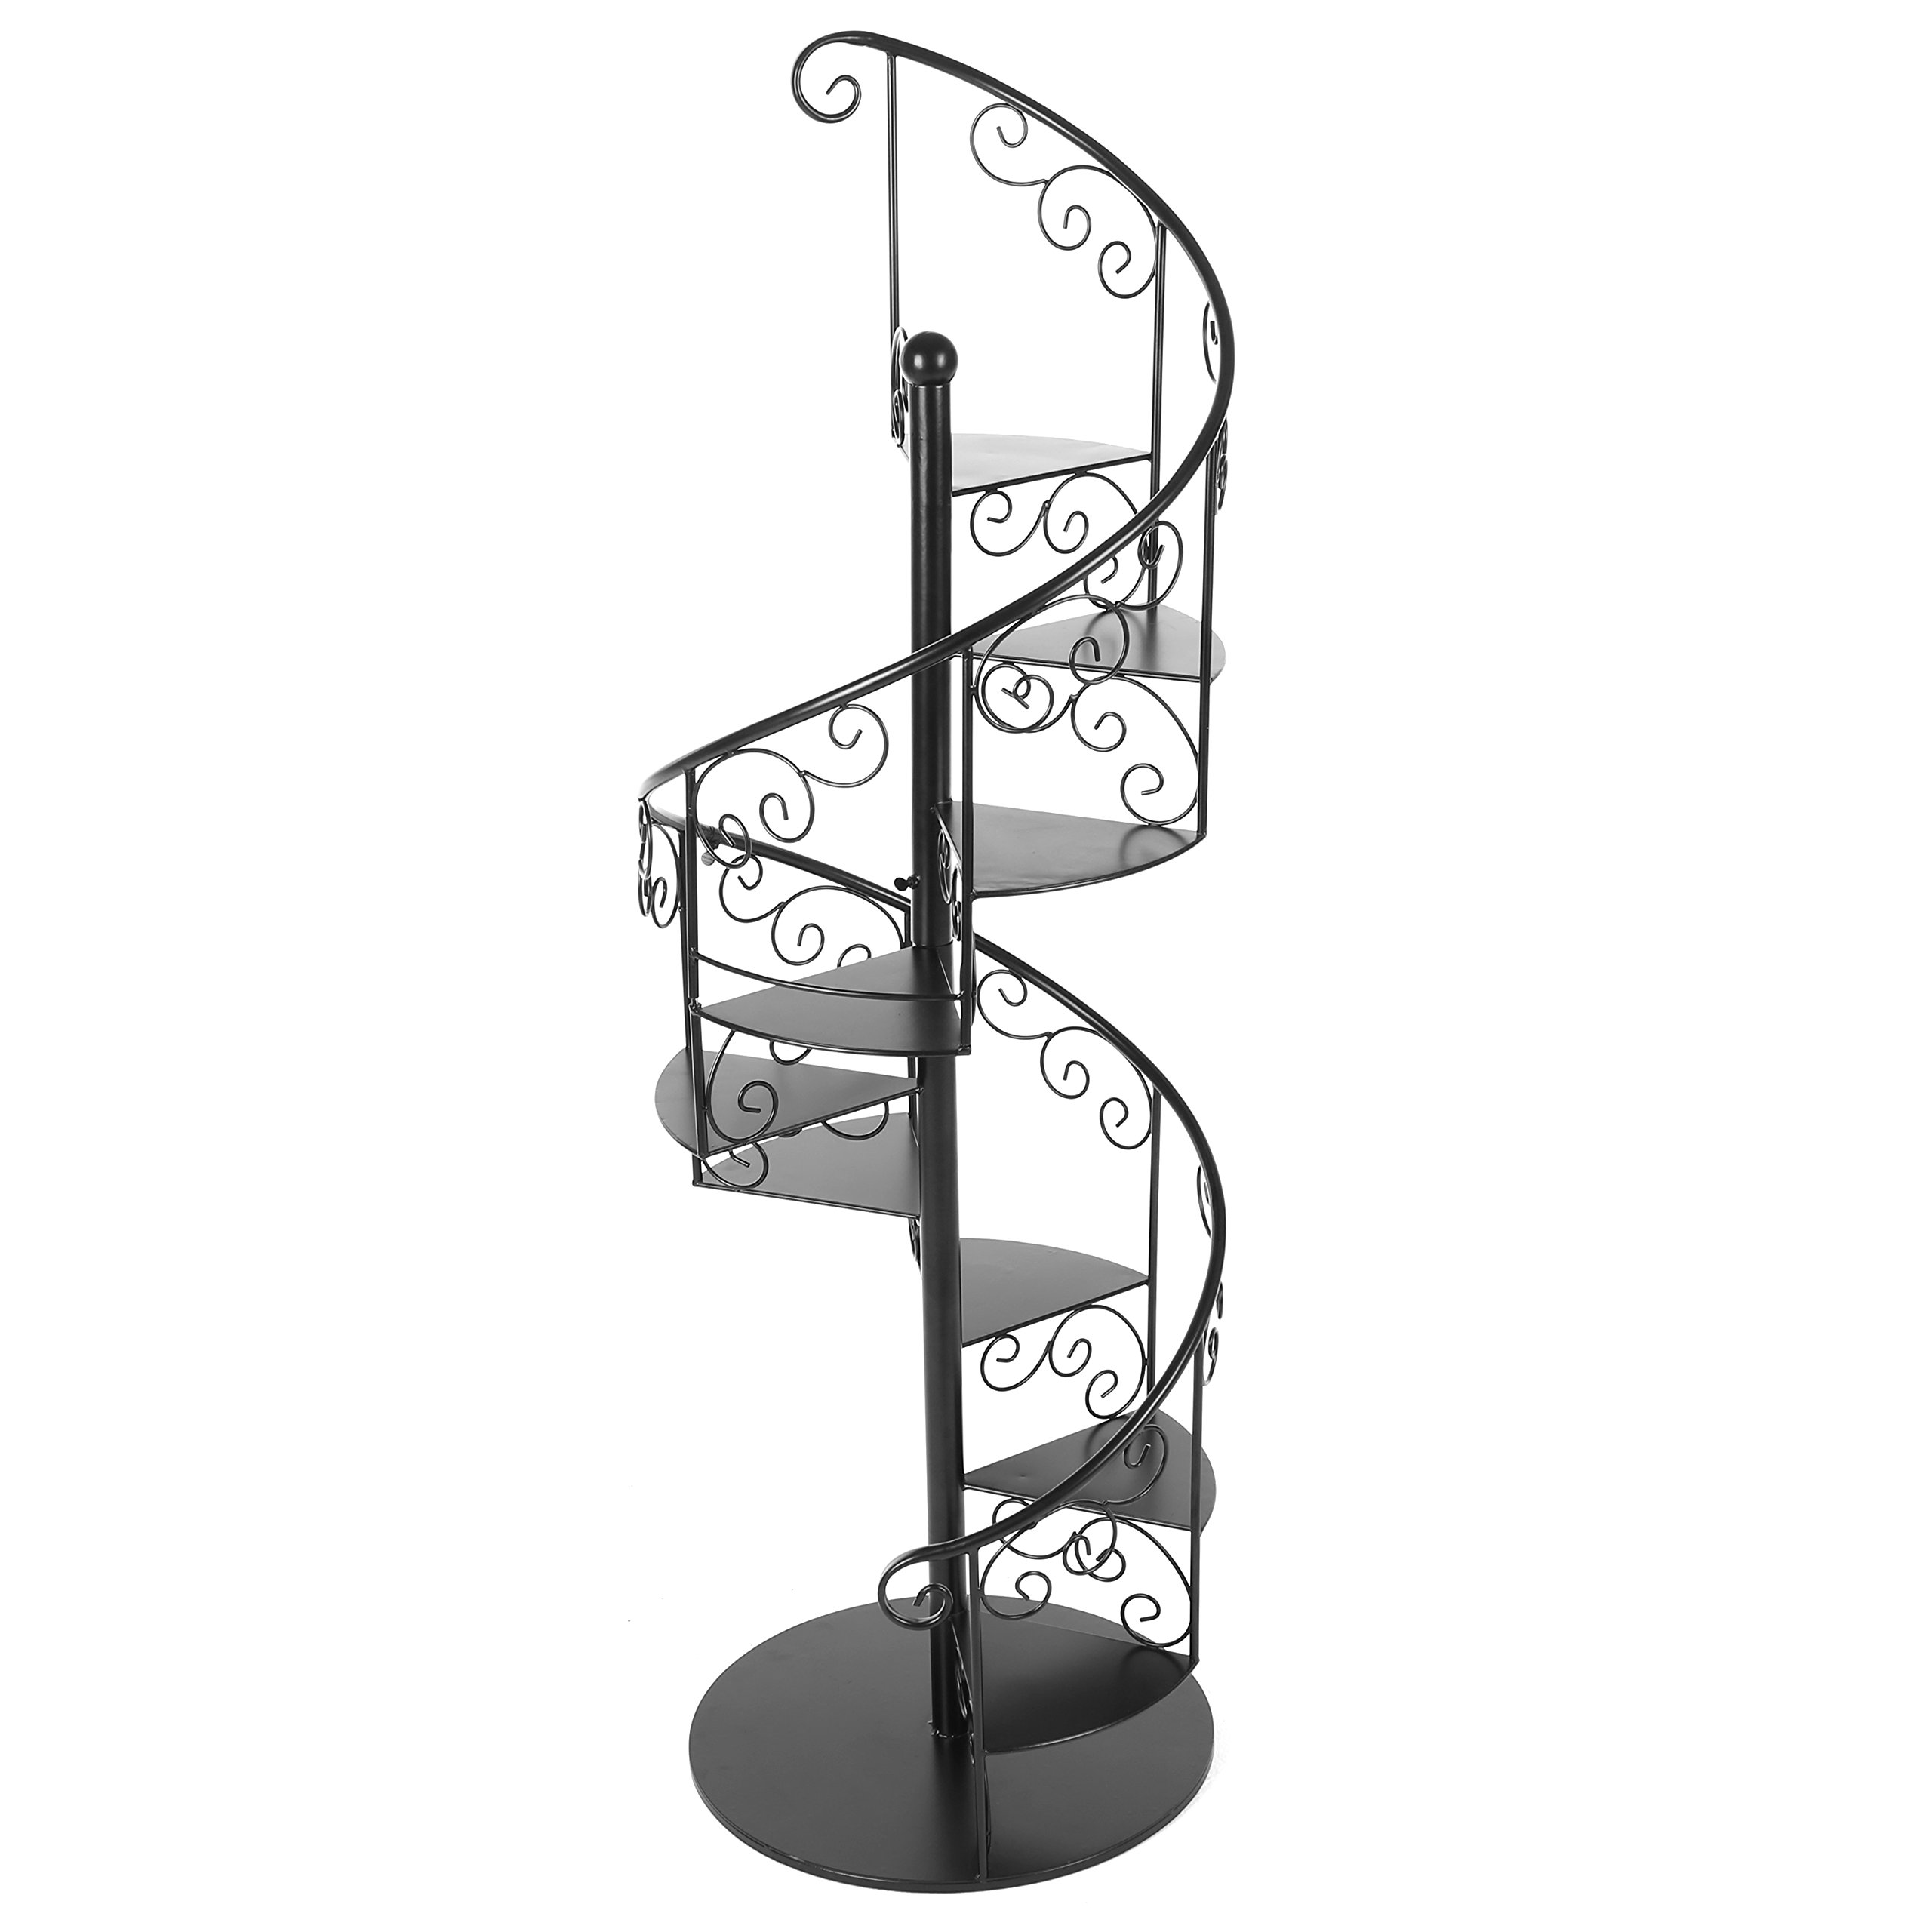 55 In Black Metal Scrollwork Winding Staircase Design Plant Display Shelf Stand / 7 Tier Wine Bottle Rack by MyGift